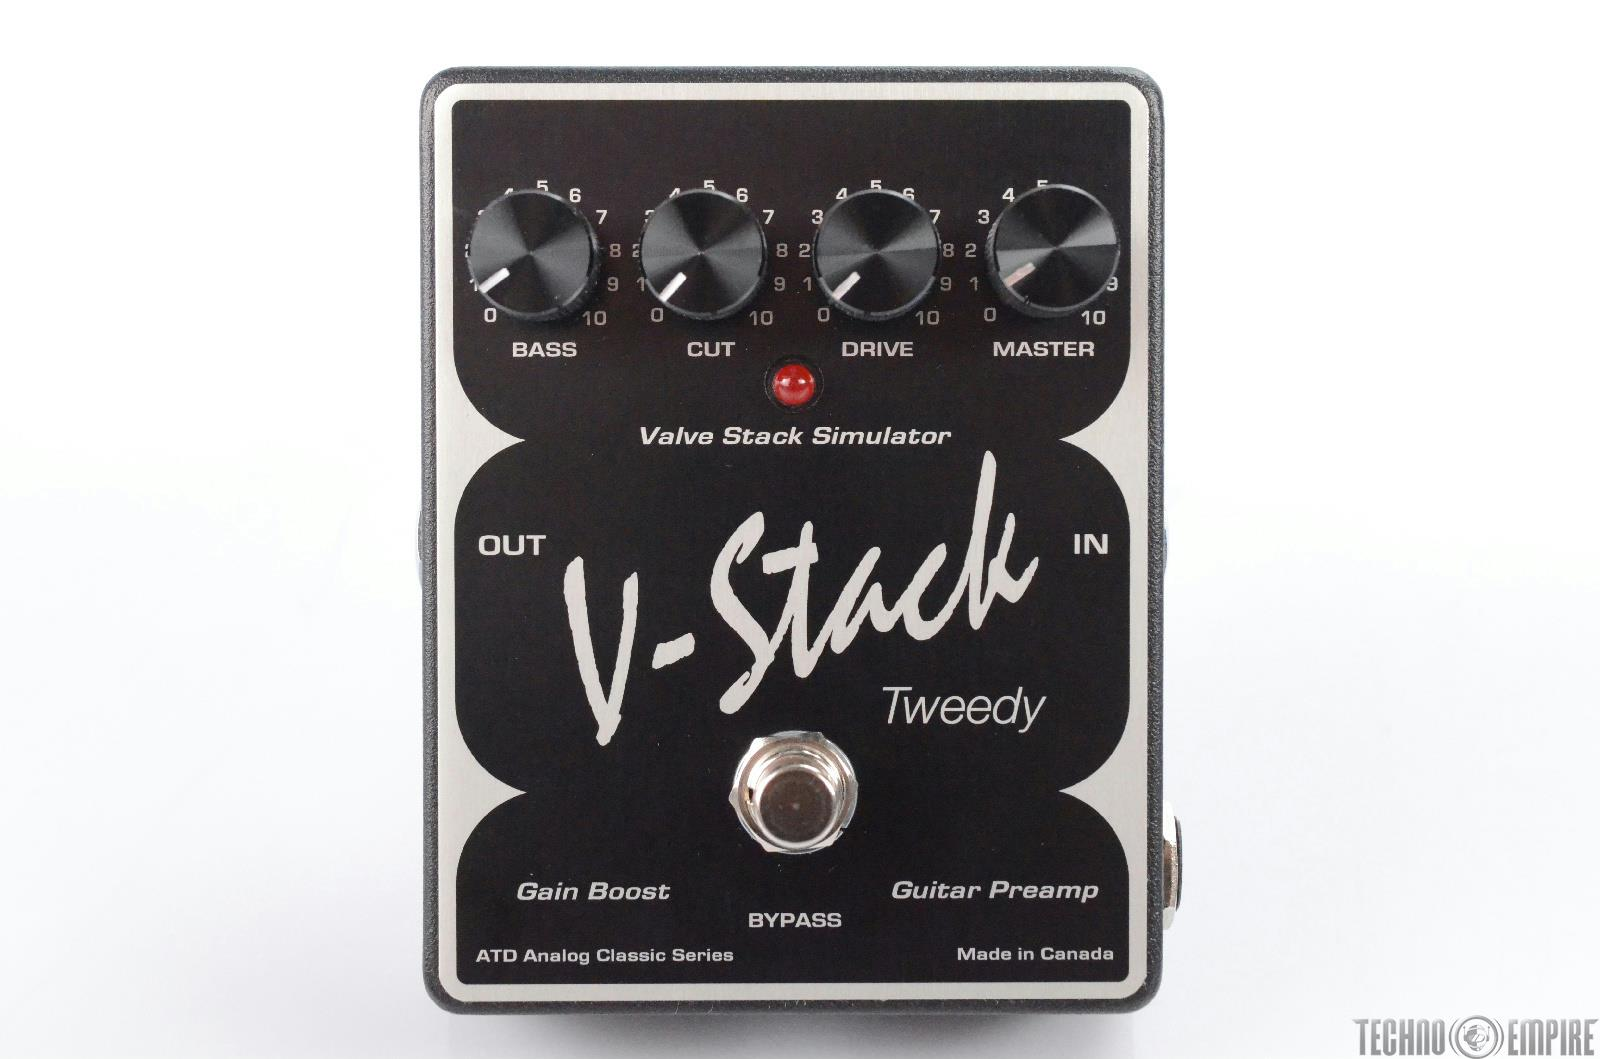 ATD V-Stack Tweedy Gain Booster Guitar Preamp Pedal Owned by Matt Hyde #30173